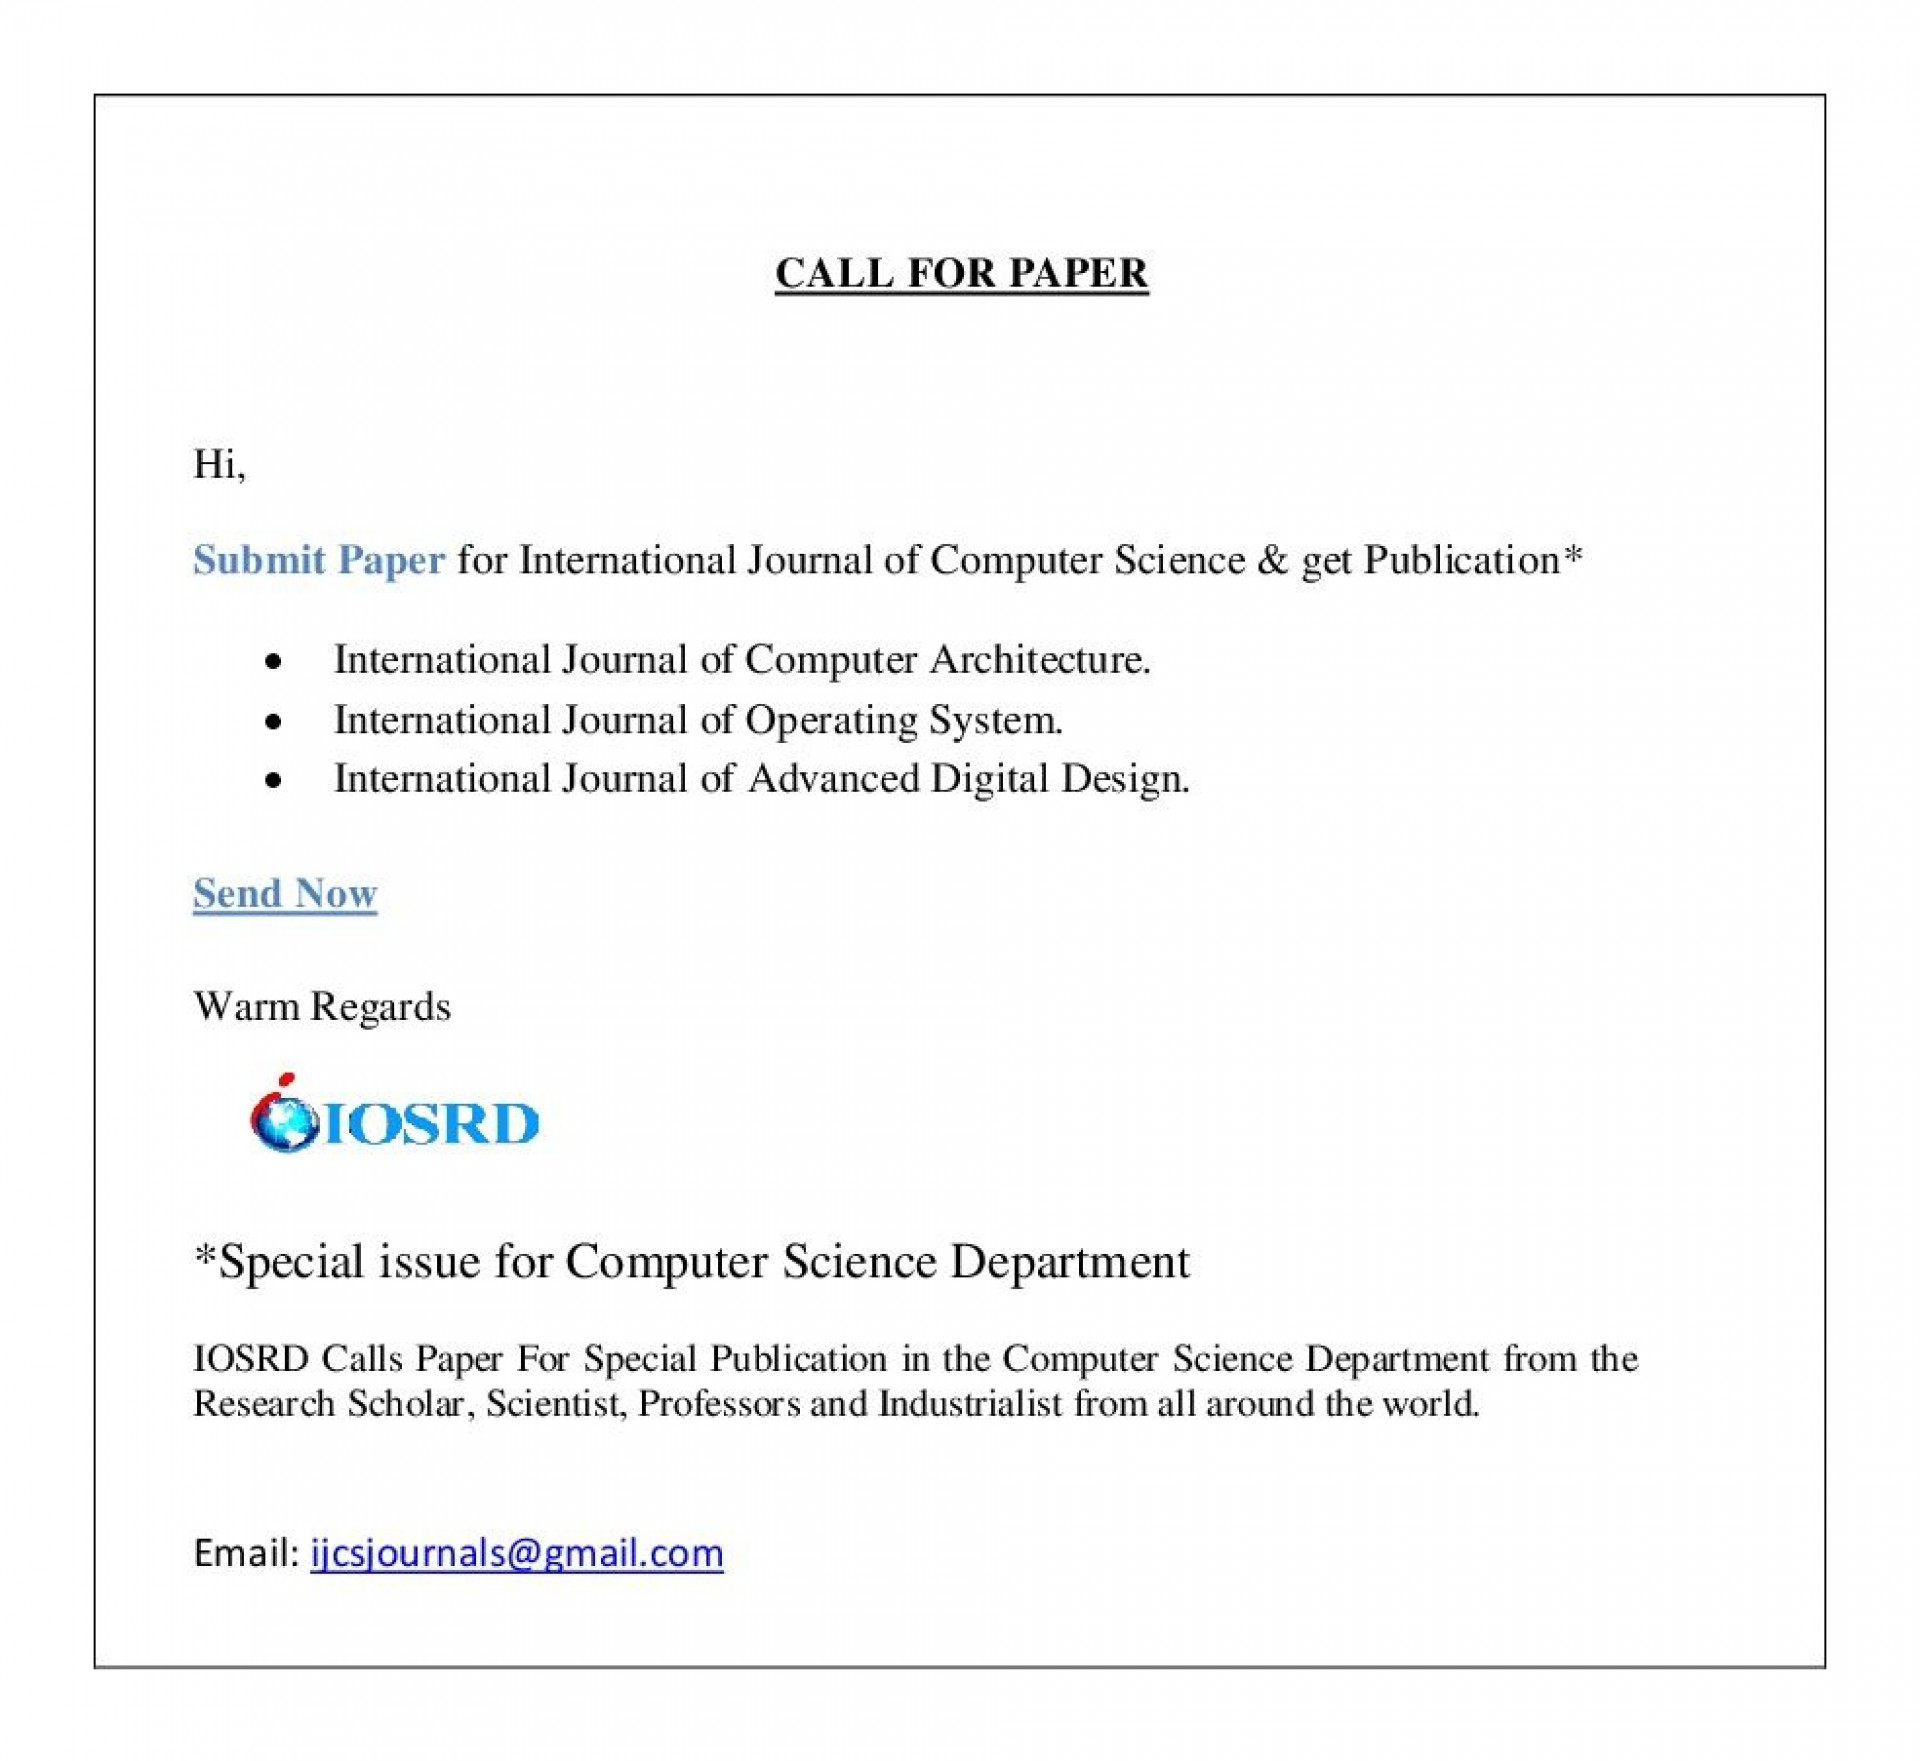 011 Research Paper Latest Papers In Computer Science Dreaded 2018 1920